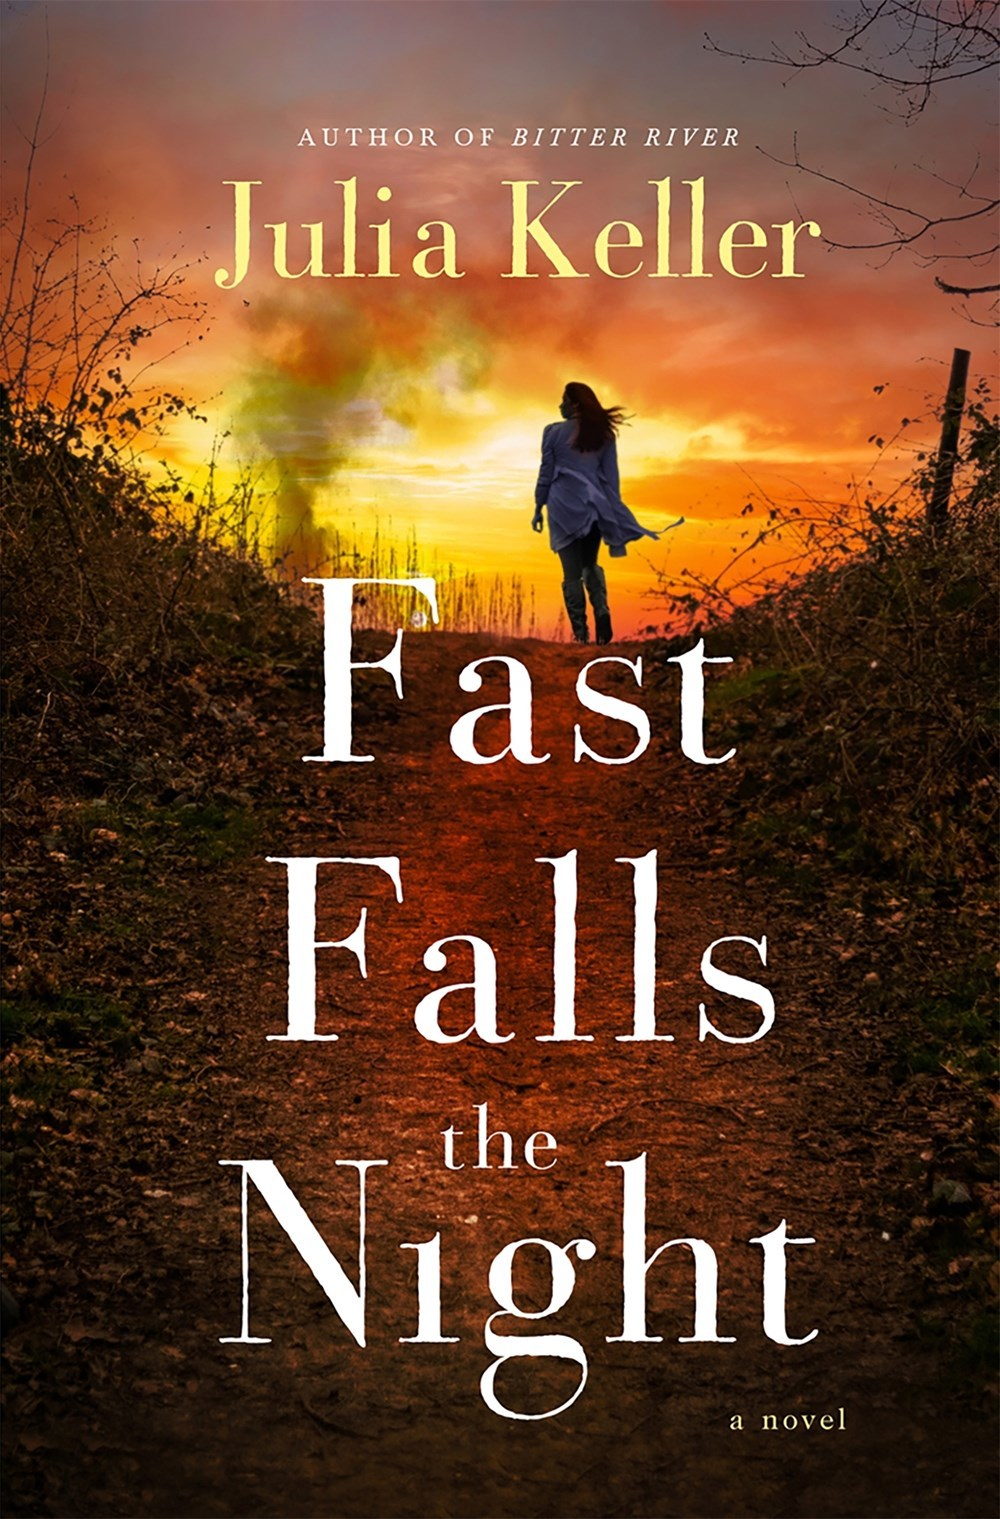 Image result for fast falls the night julia keller